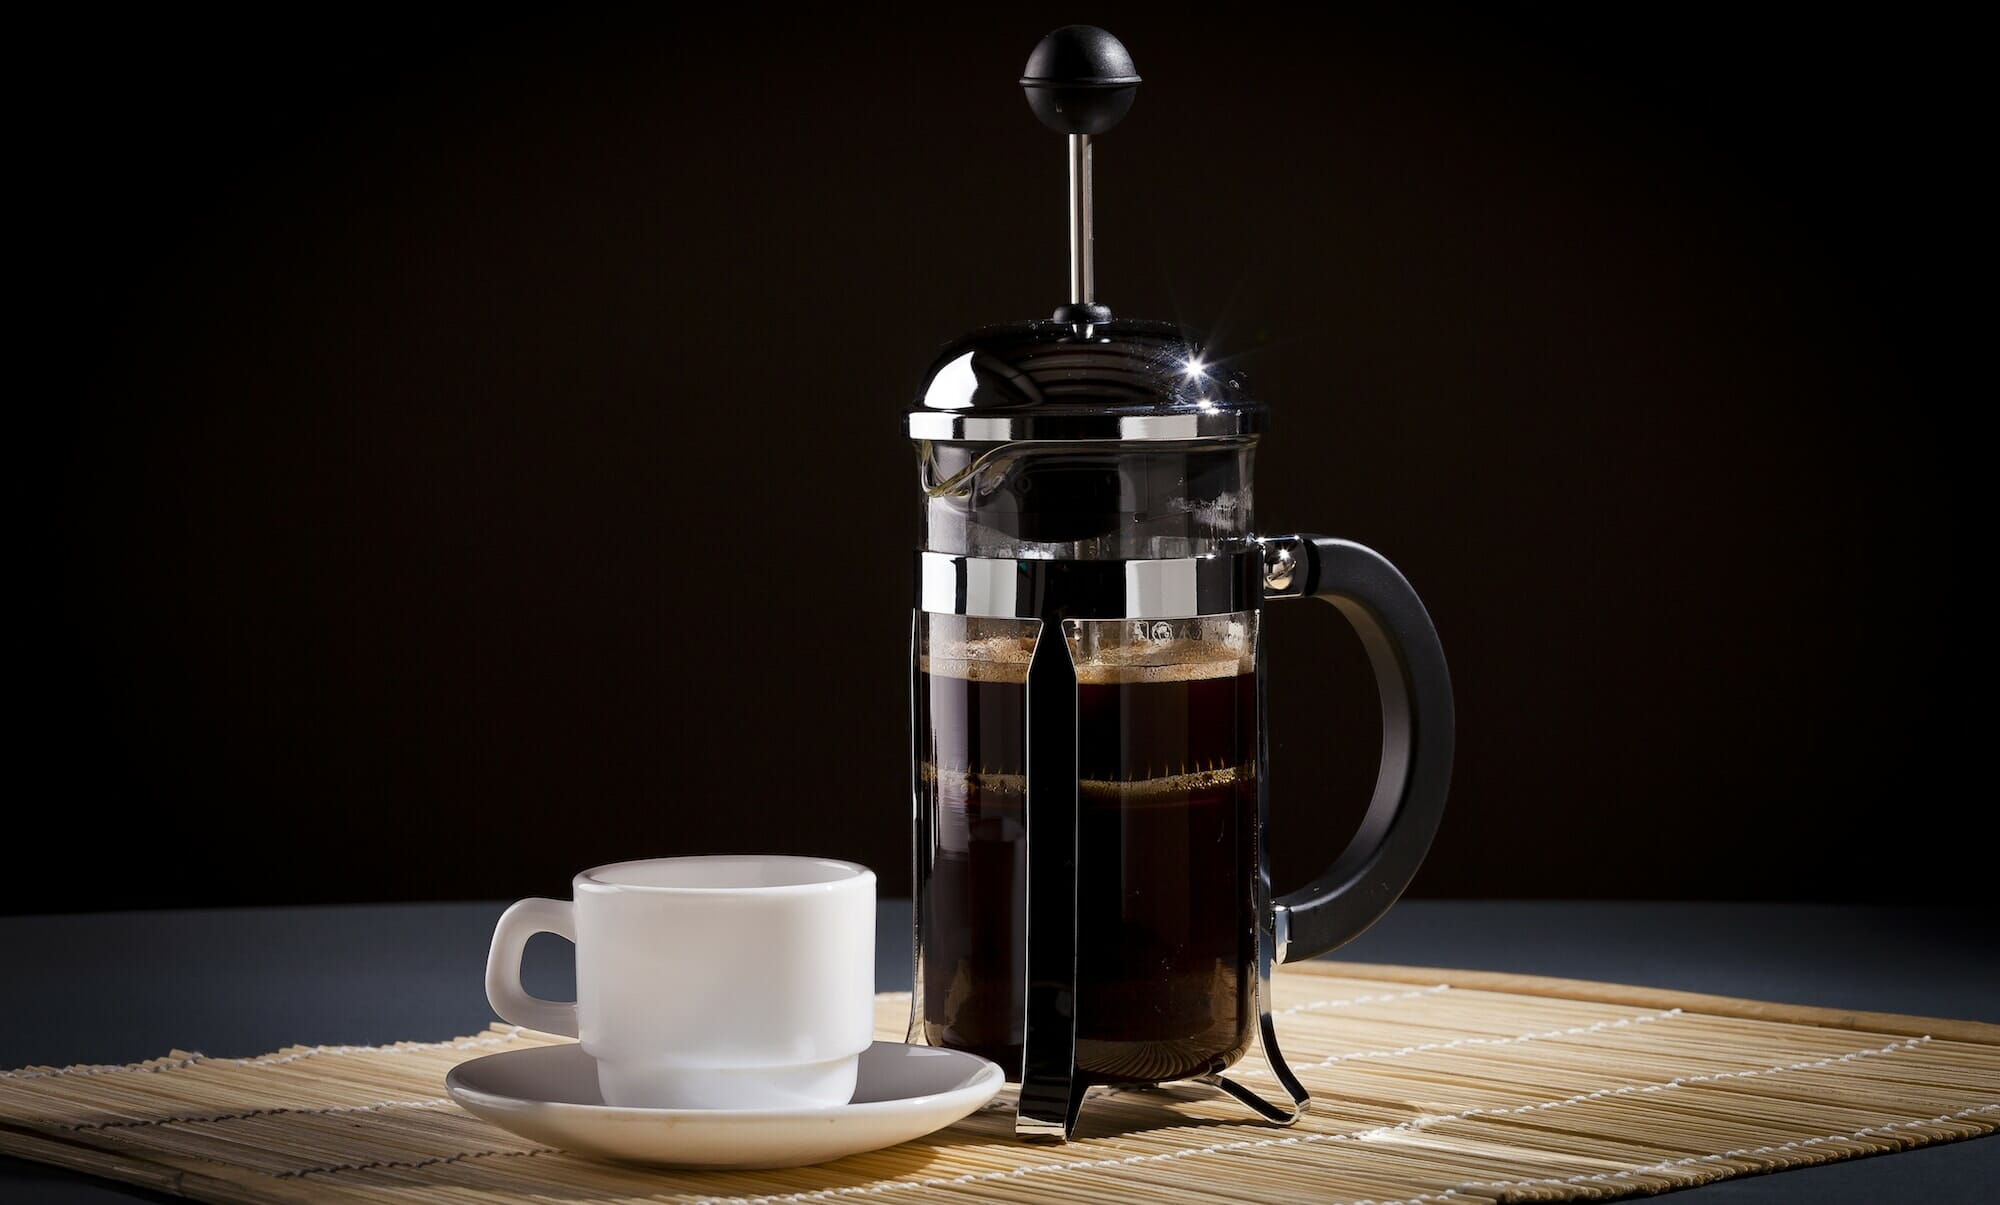 French Press Koffie maken